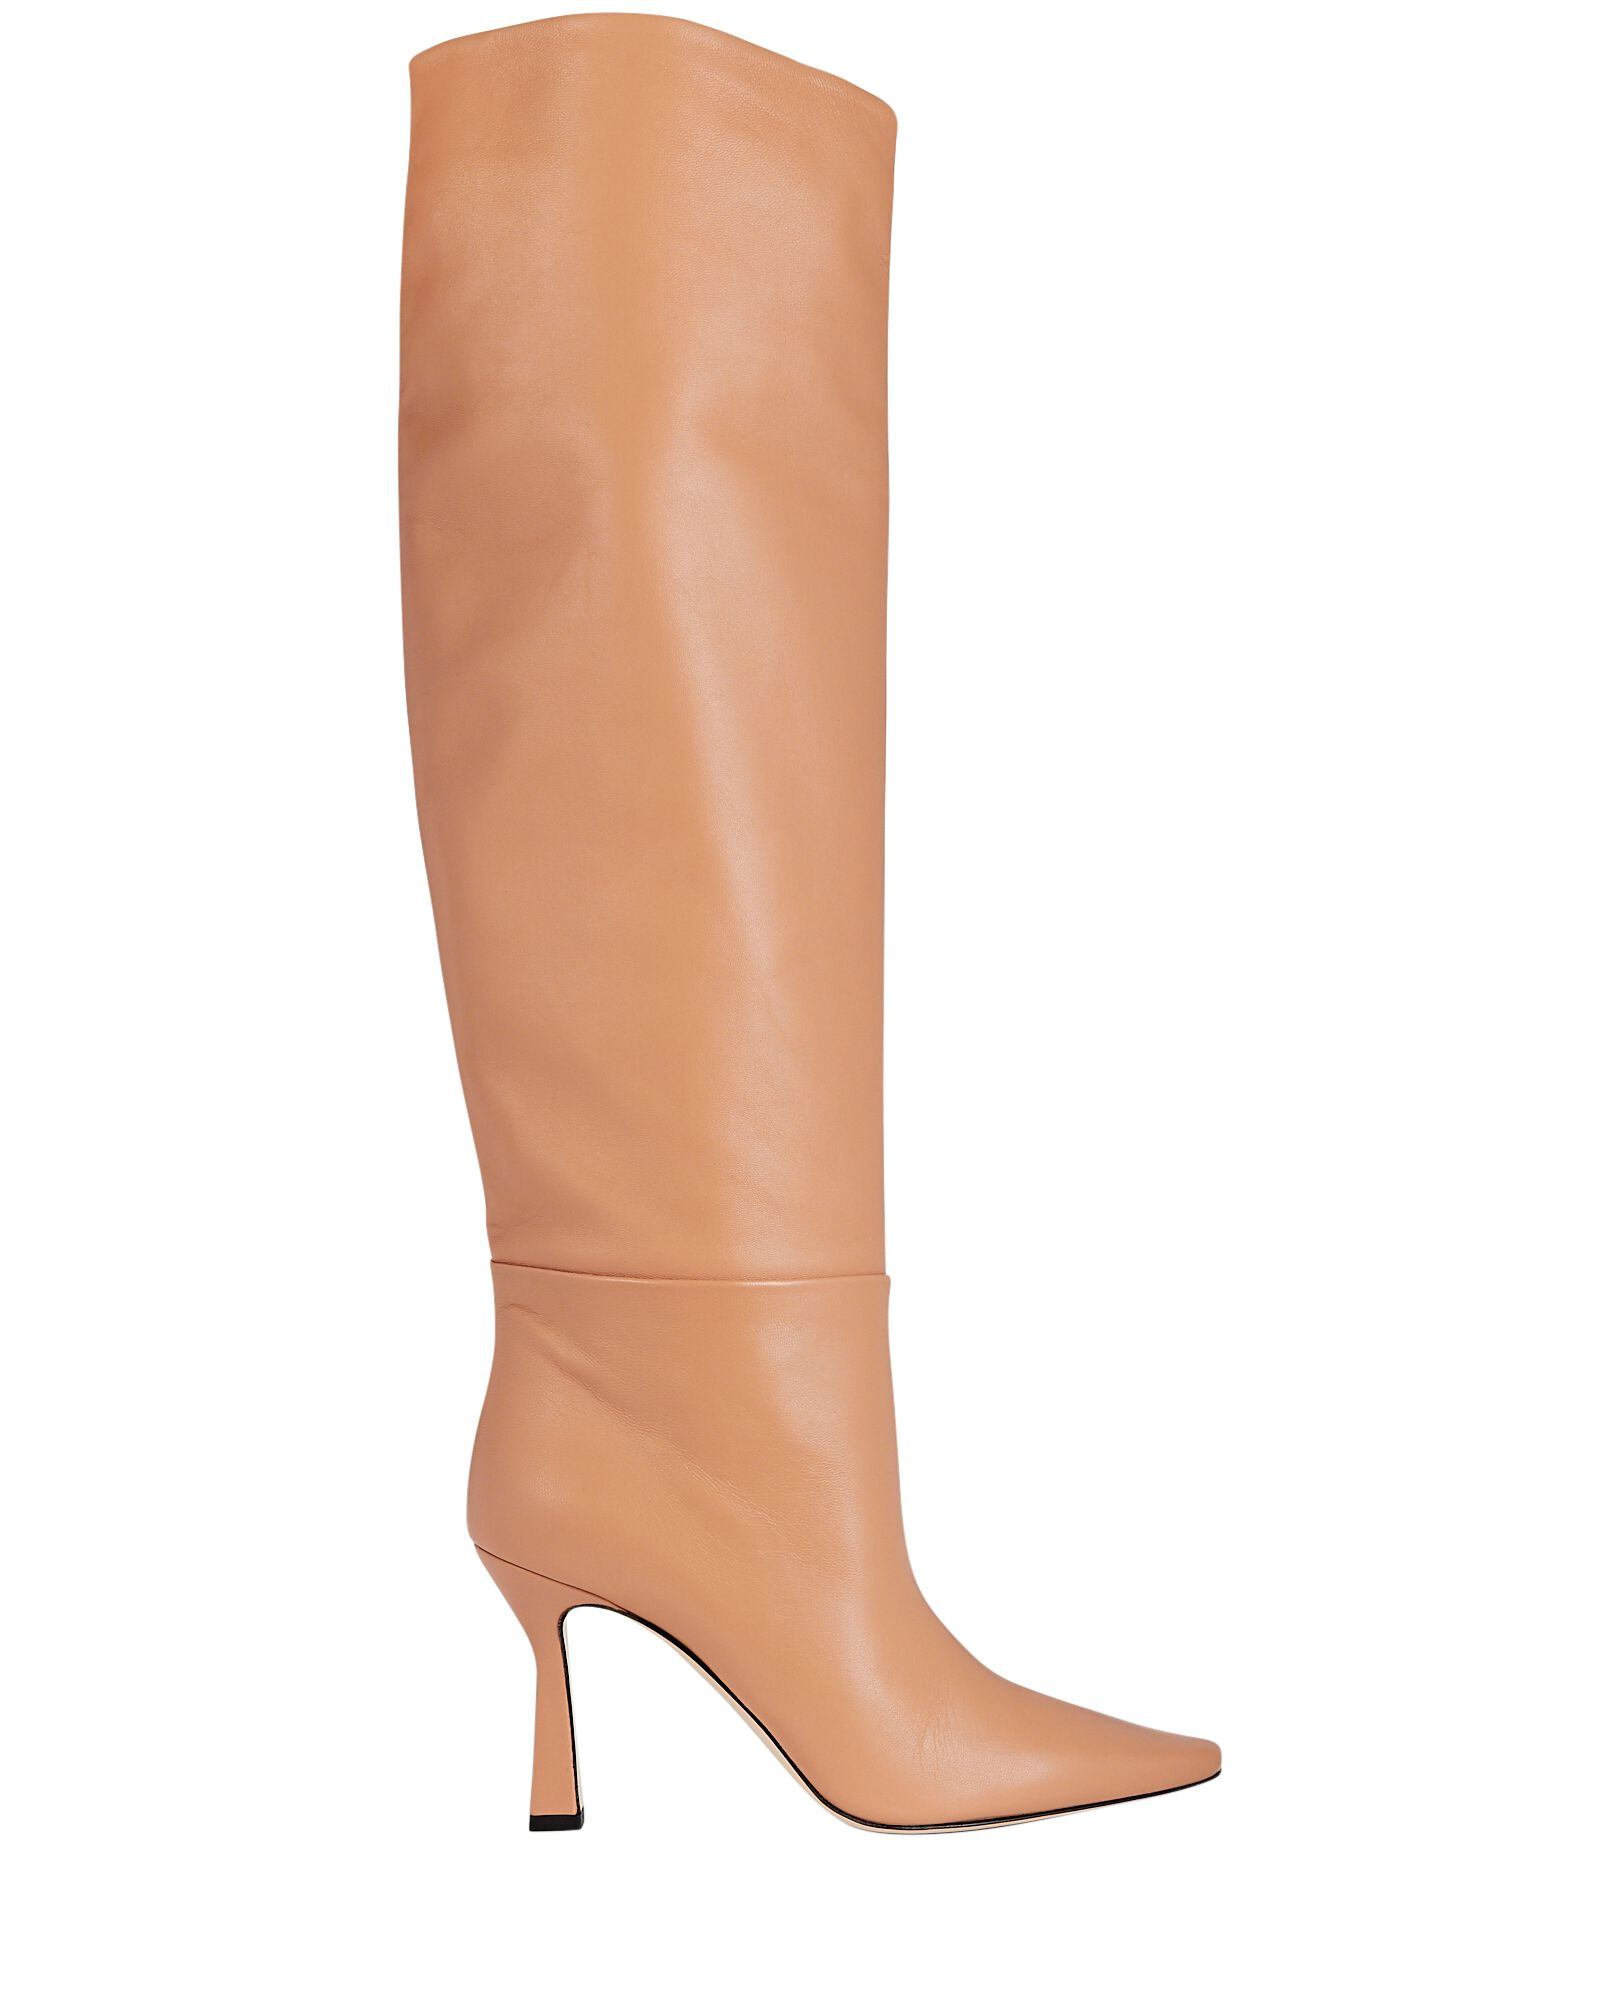 Lina Leather Knee-High Boots, BROWN, hi-res